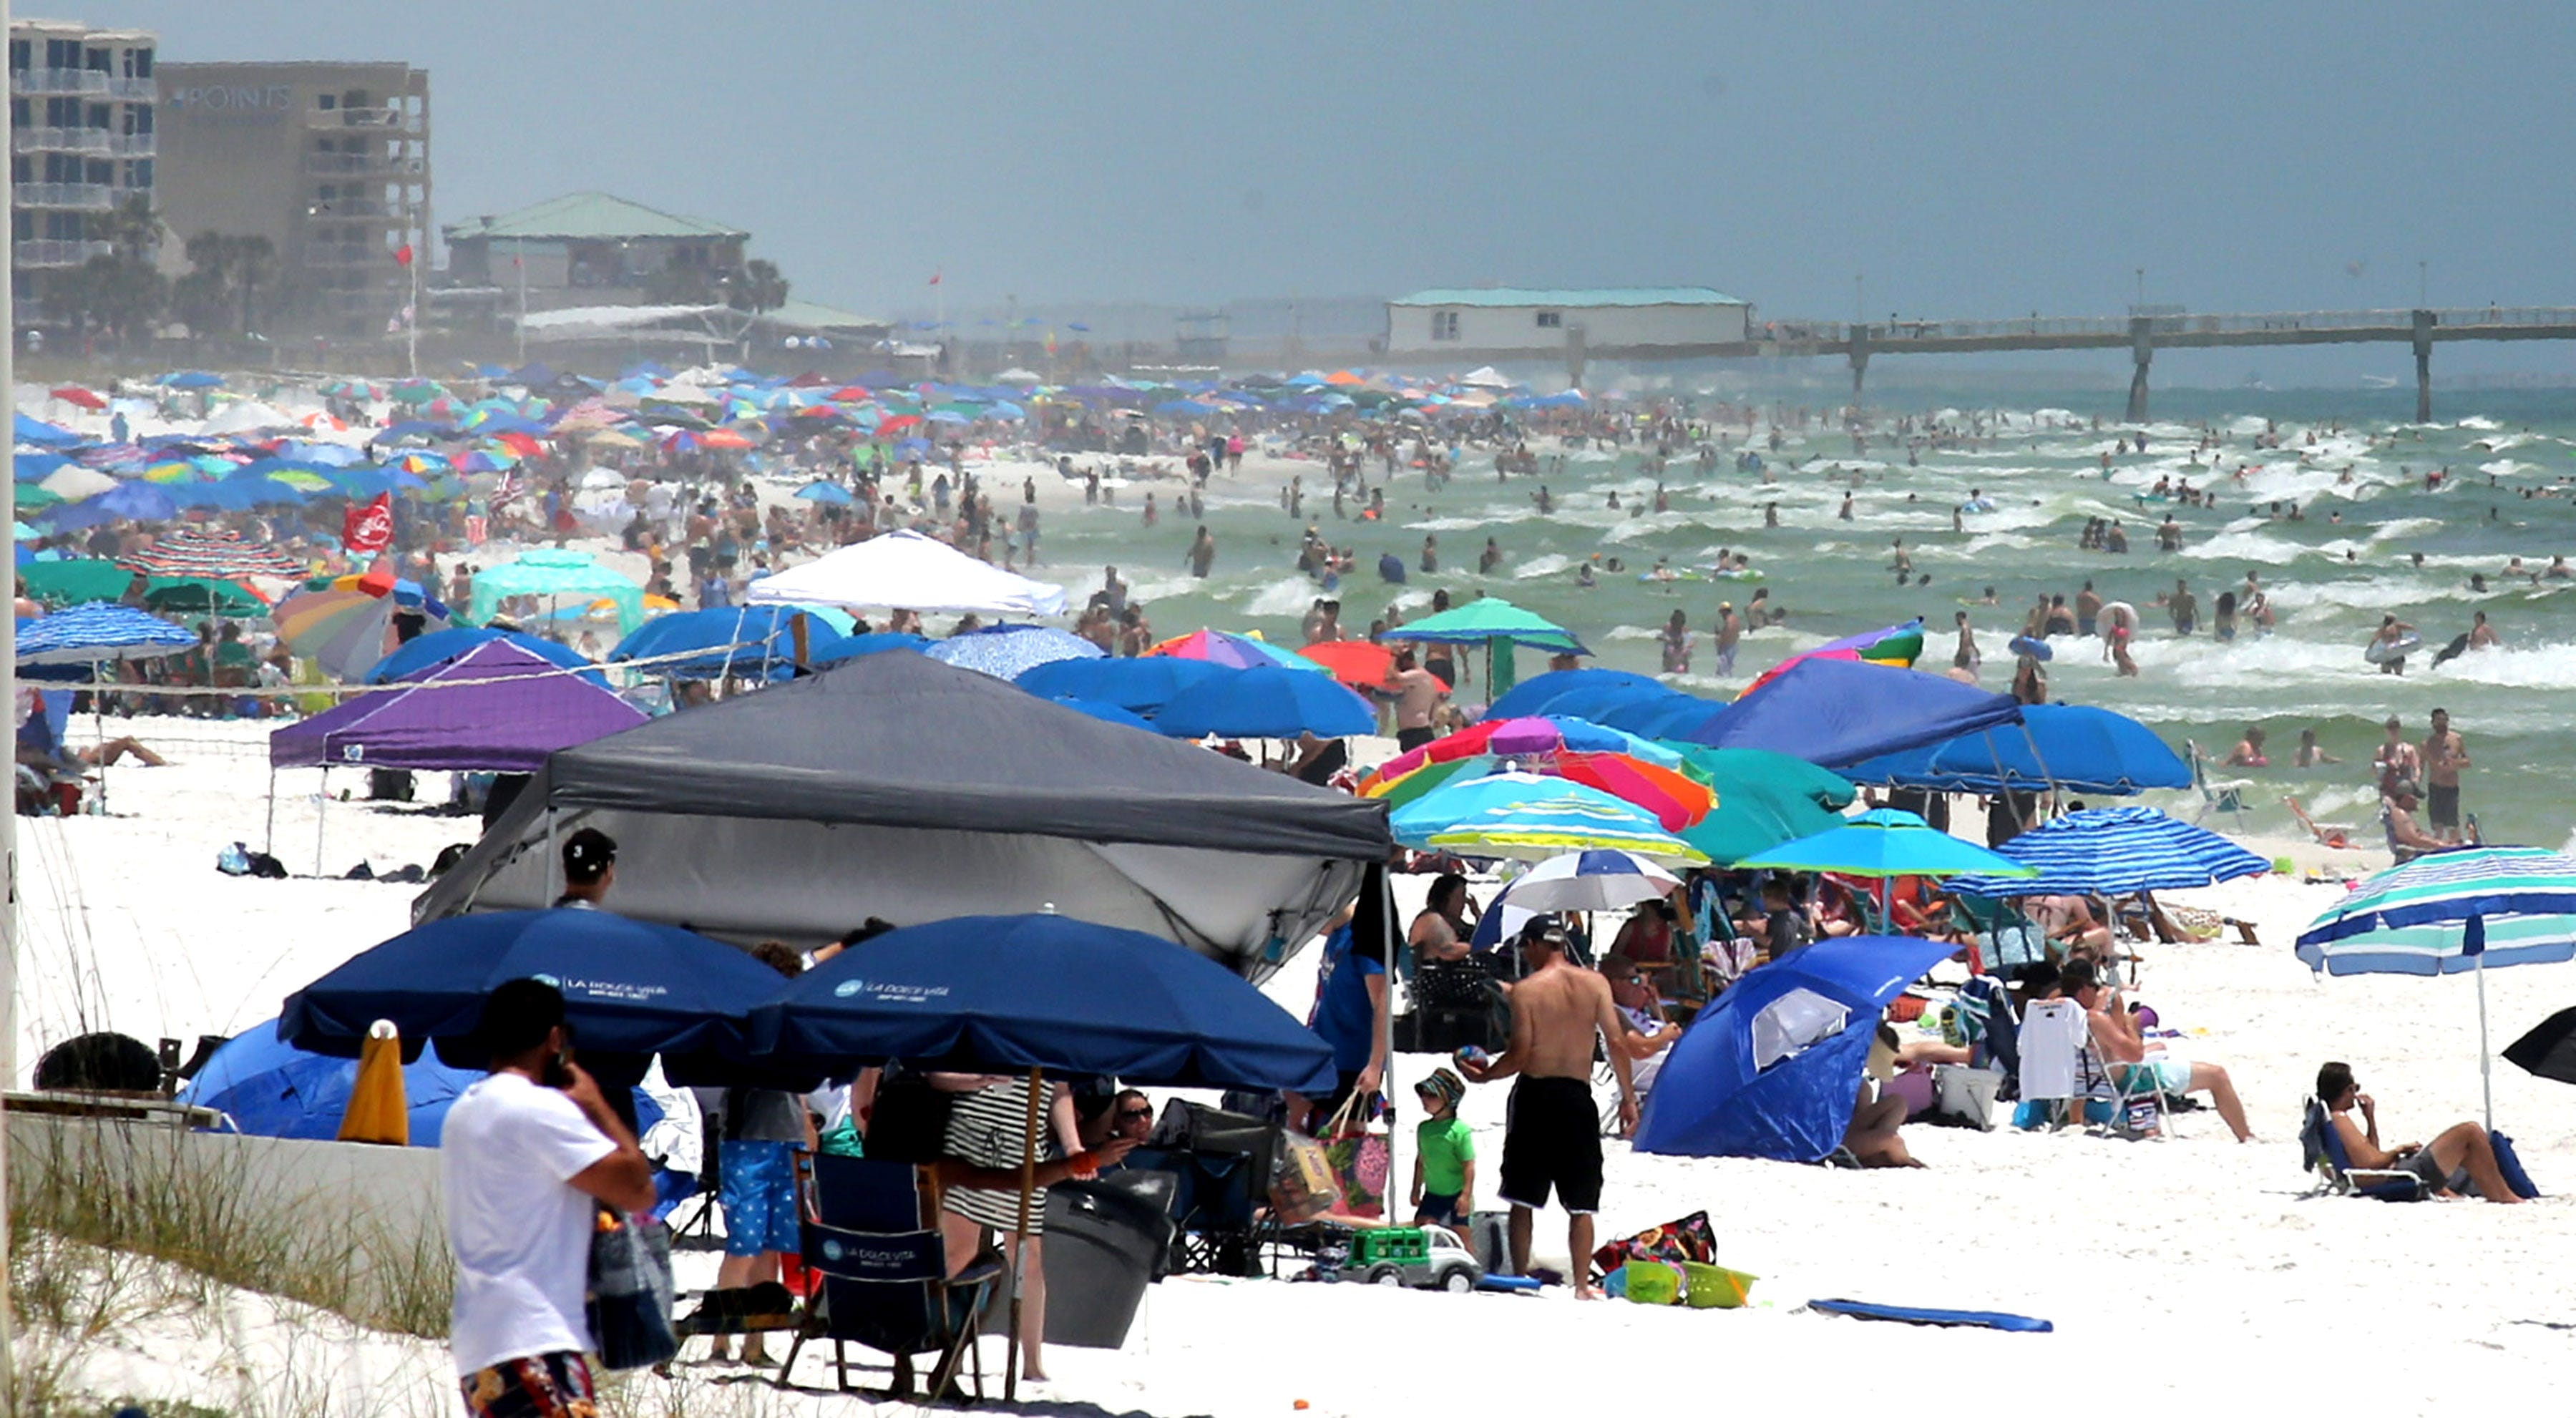 People pack the beaches on Okaloosa Island, Florida, as the long Memorial Day weekend begins.